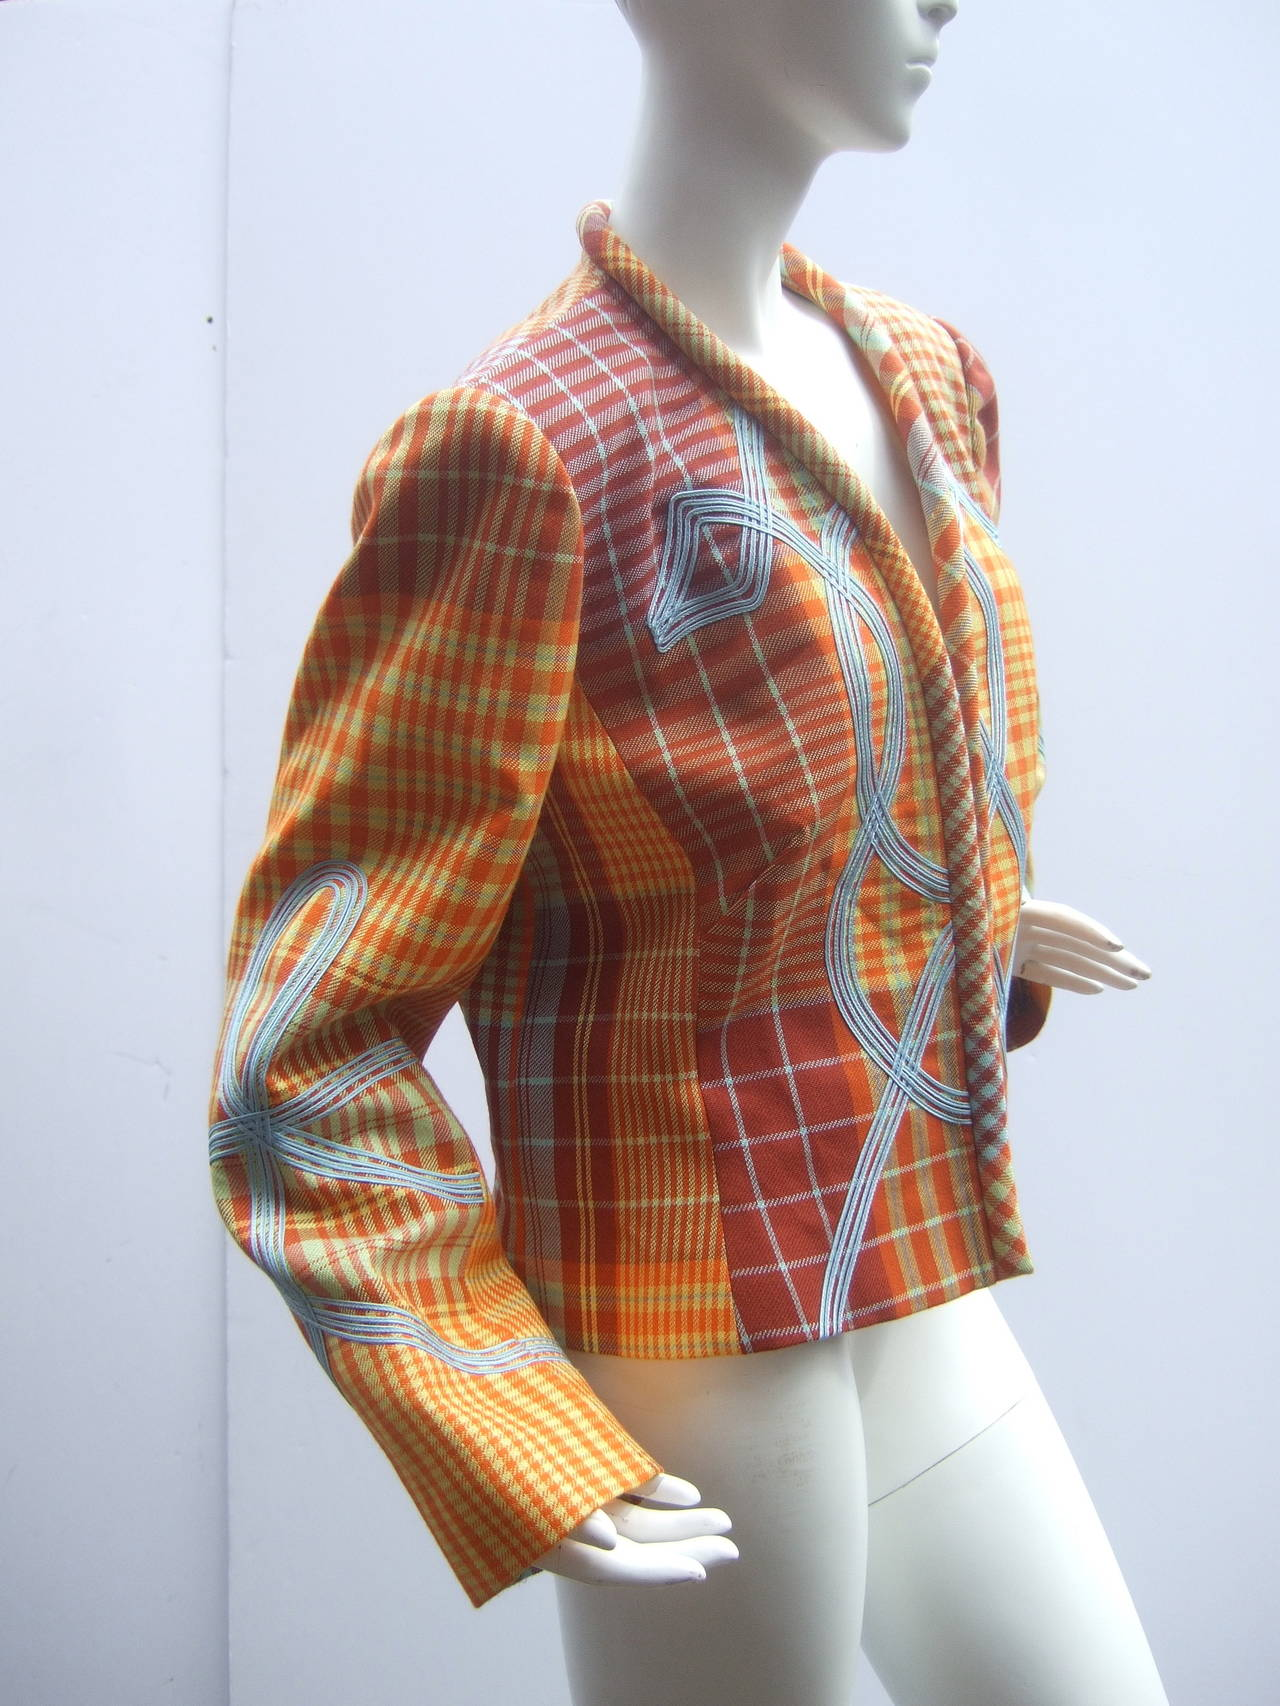 Brown Christian Lacroix Paris Plaid Wool Jacket Size 46 c 1990 For Sale